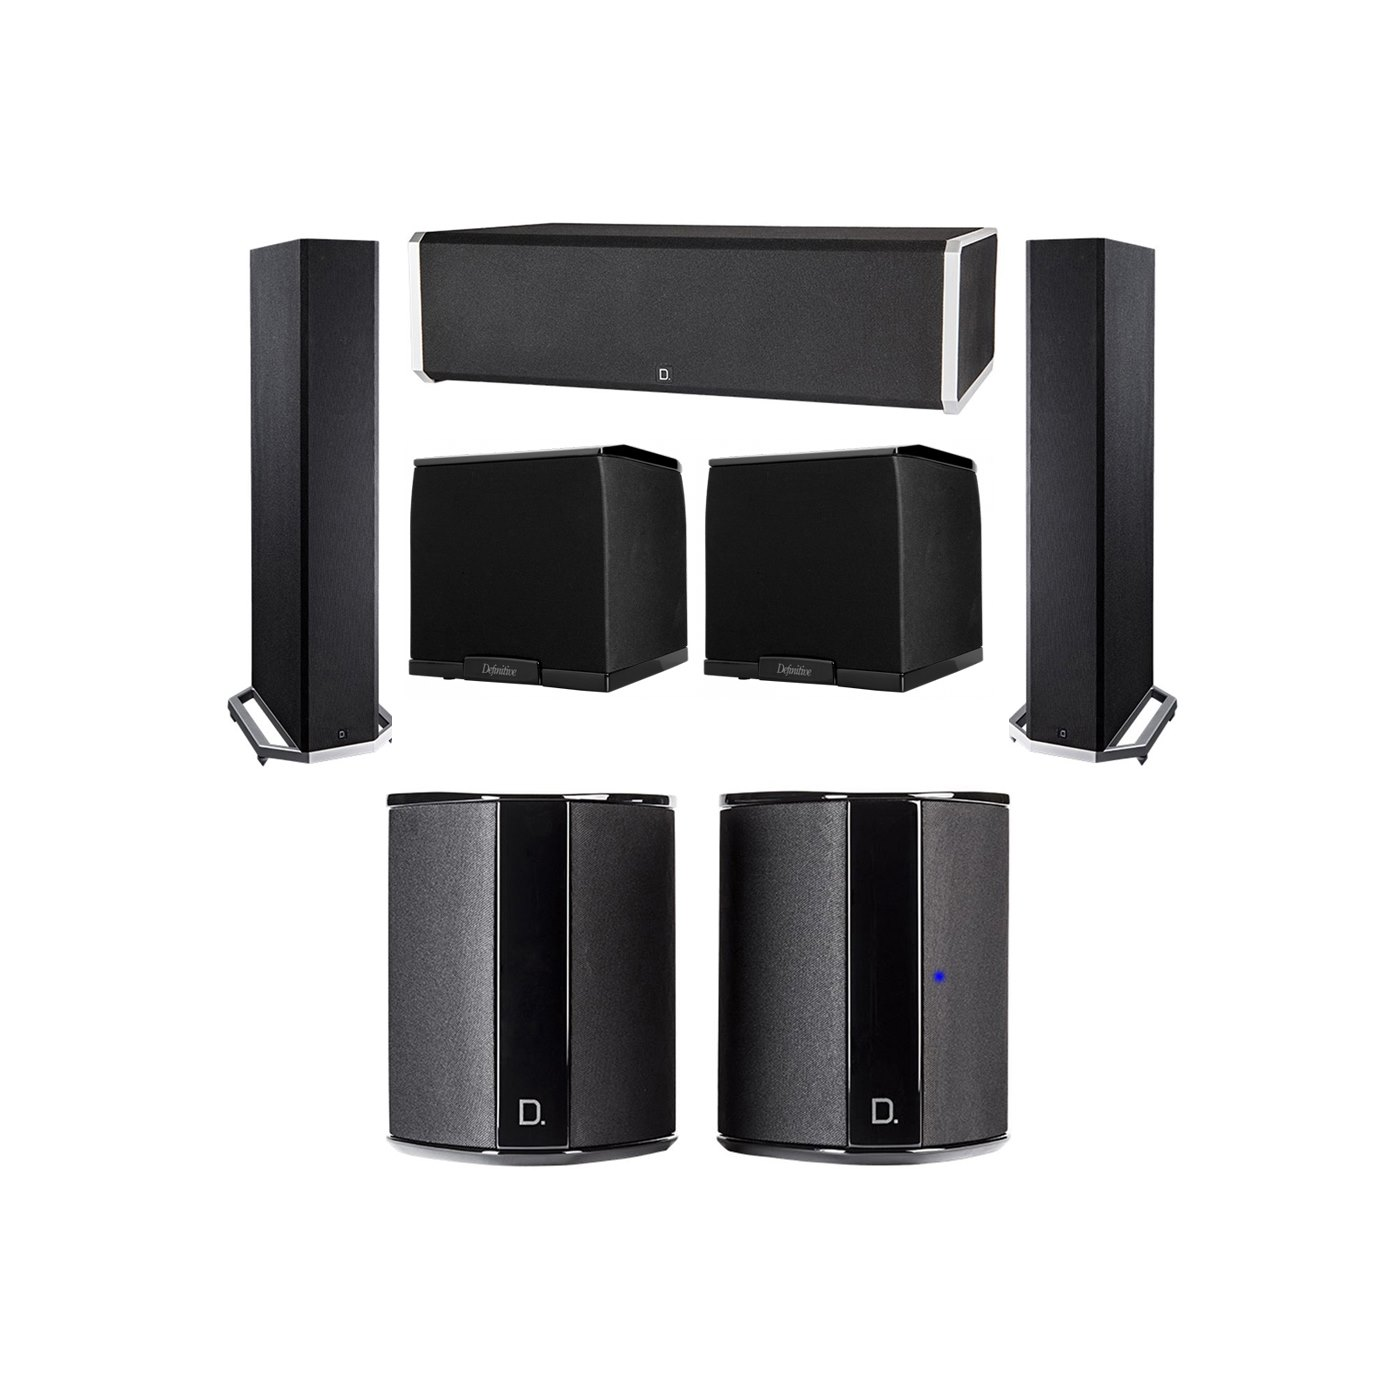 Definitive Technology 5.2 System with 2 BP9020 Tower Speakers, 1 CS9060 Center Channel Speaker, 2 SR9040 Surround Speaker, 2 Definitive Technology SuperCube 2000 Powered Subwoofer